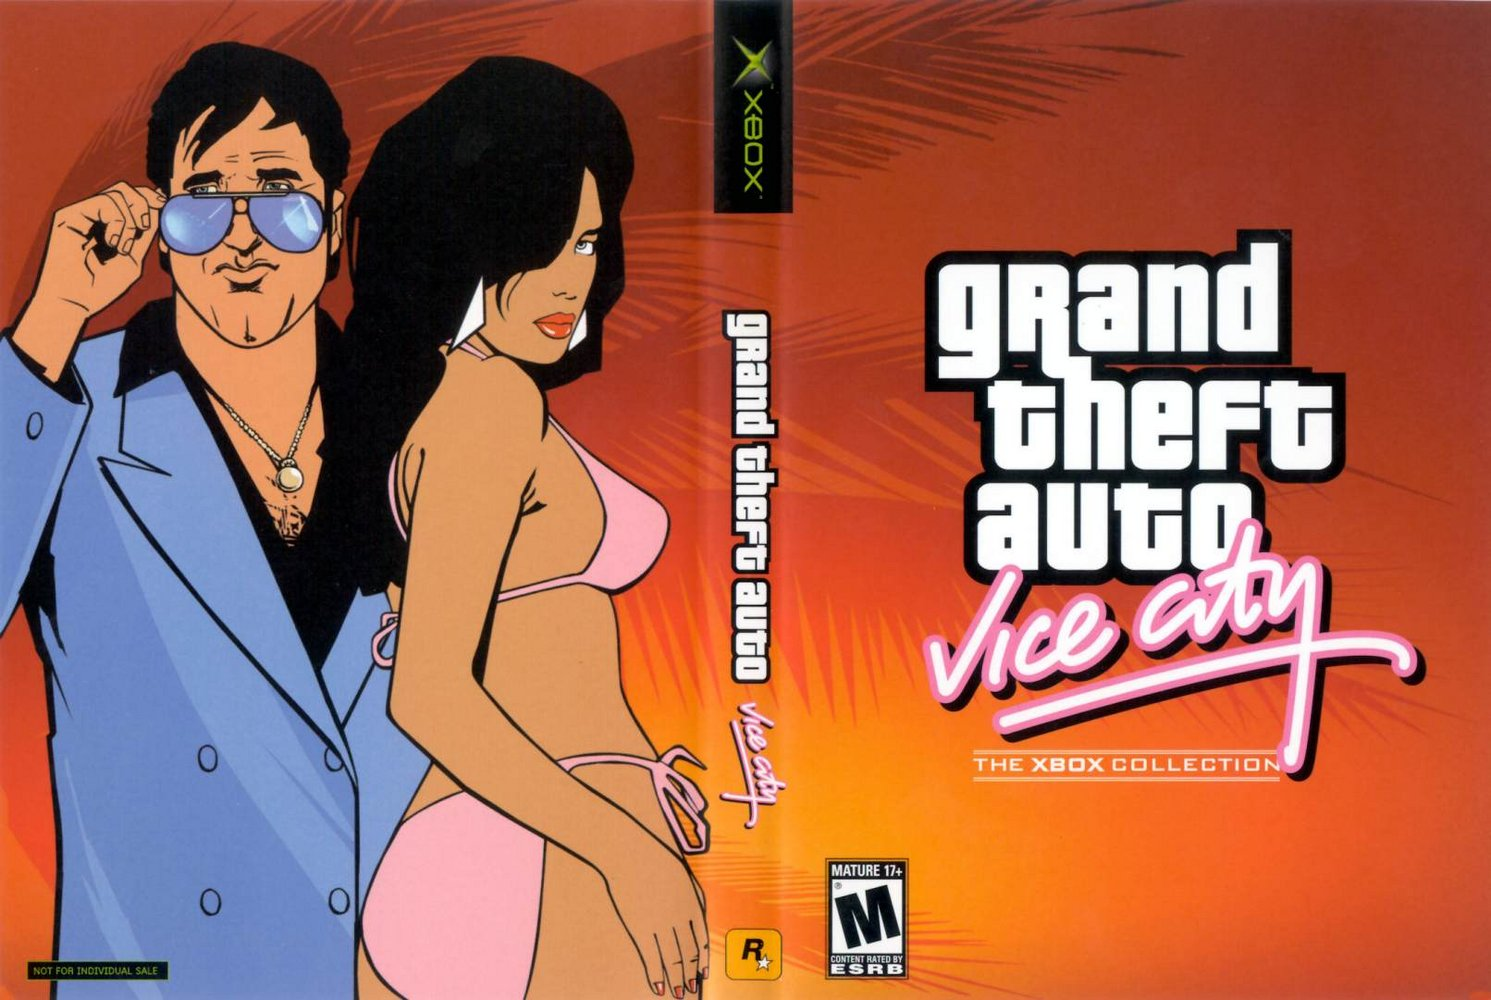 Explain Grand theft auto vice city sex think, that